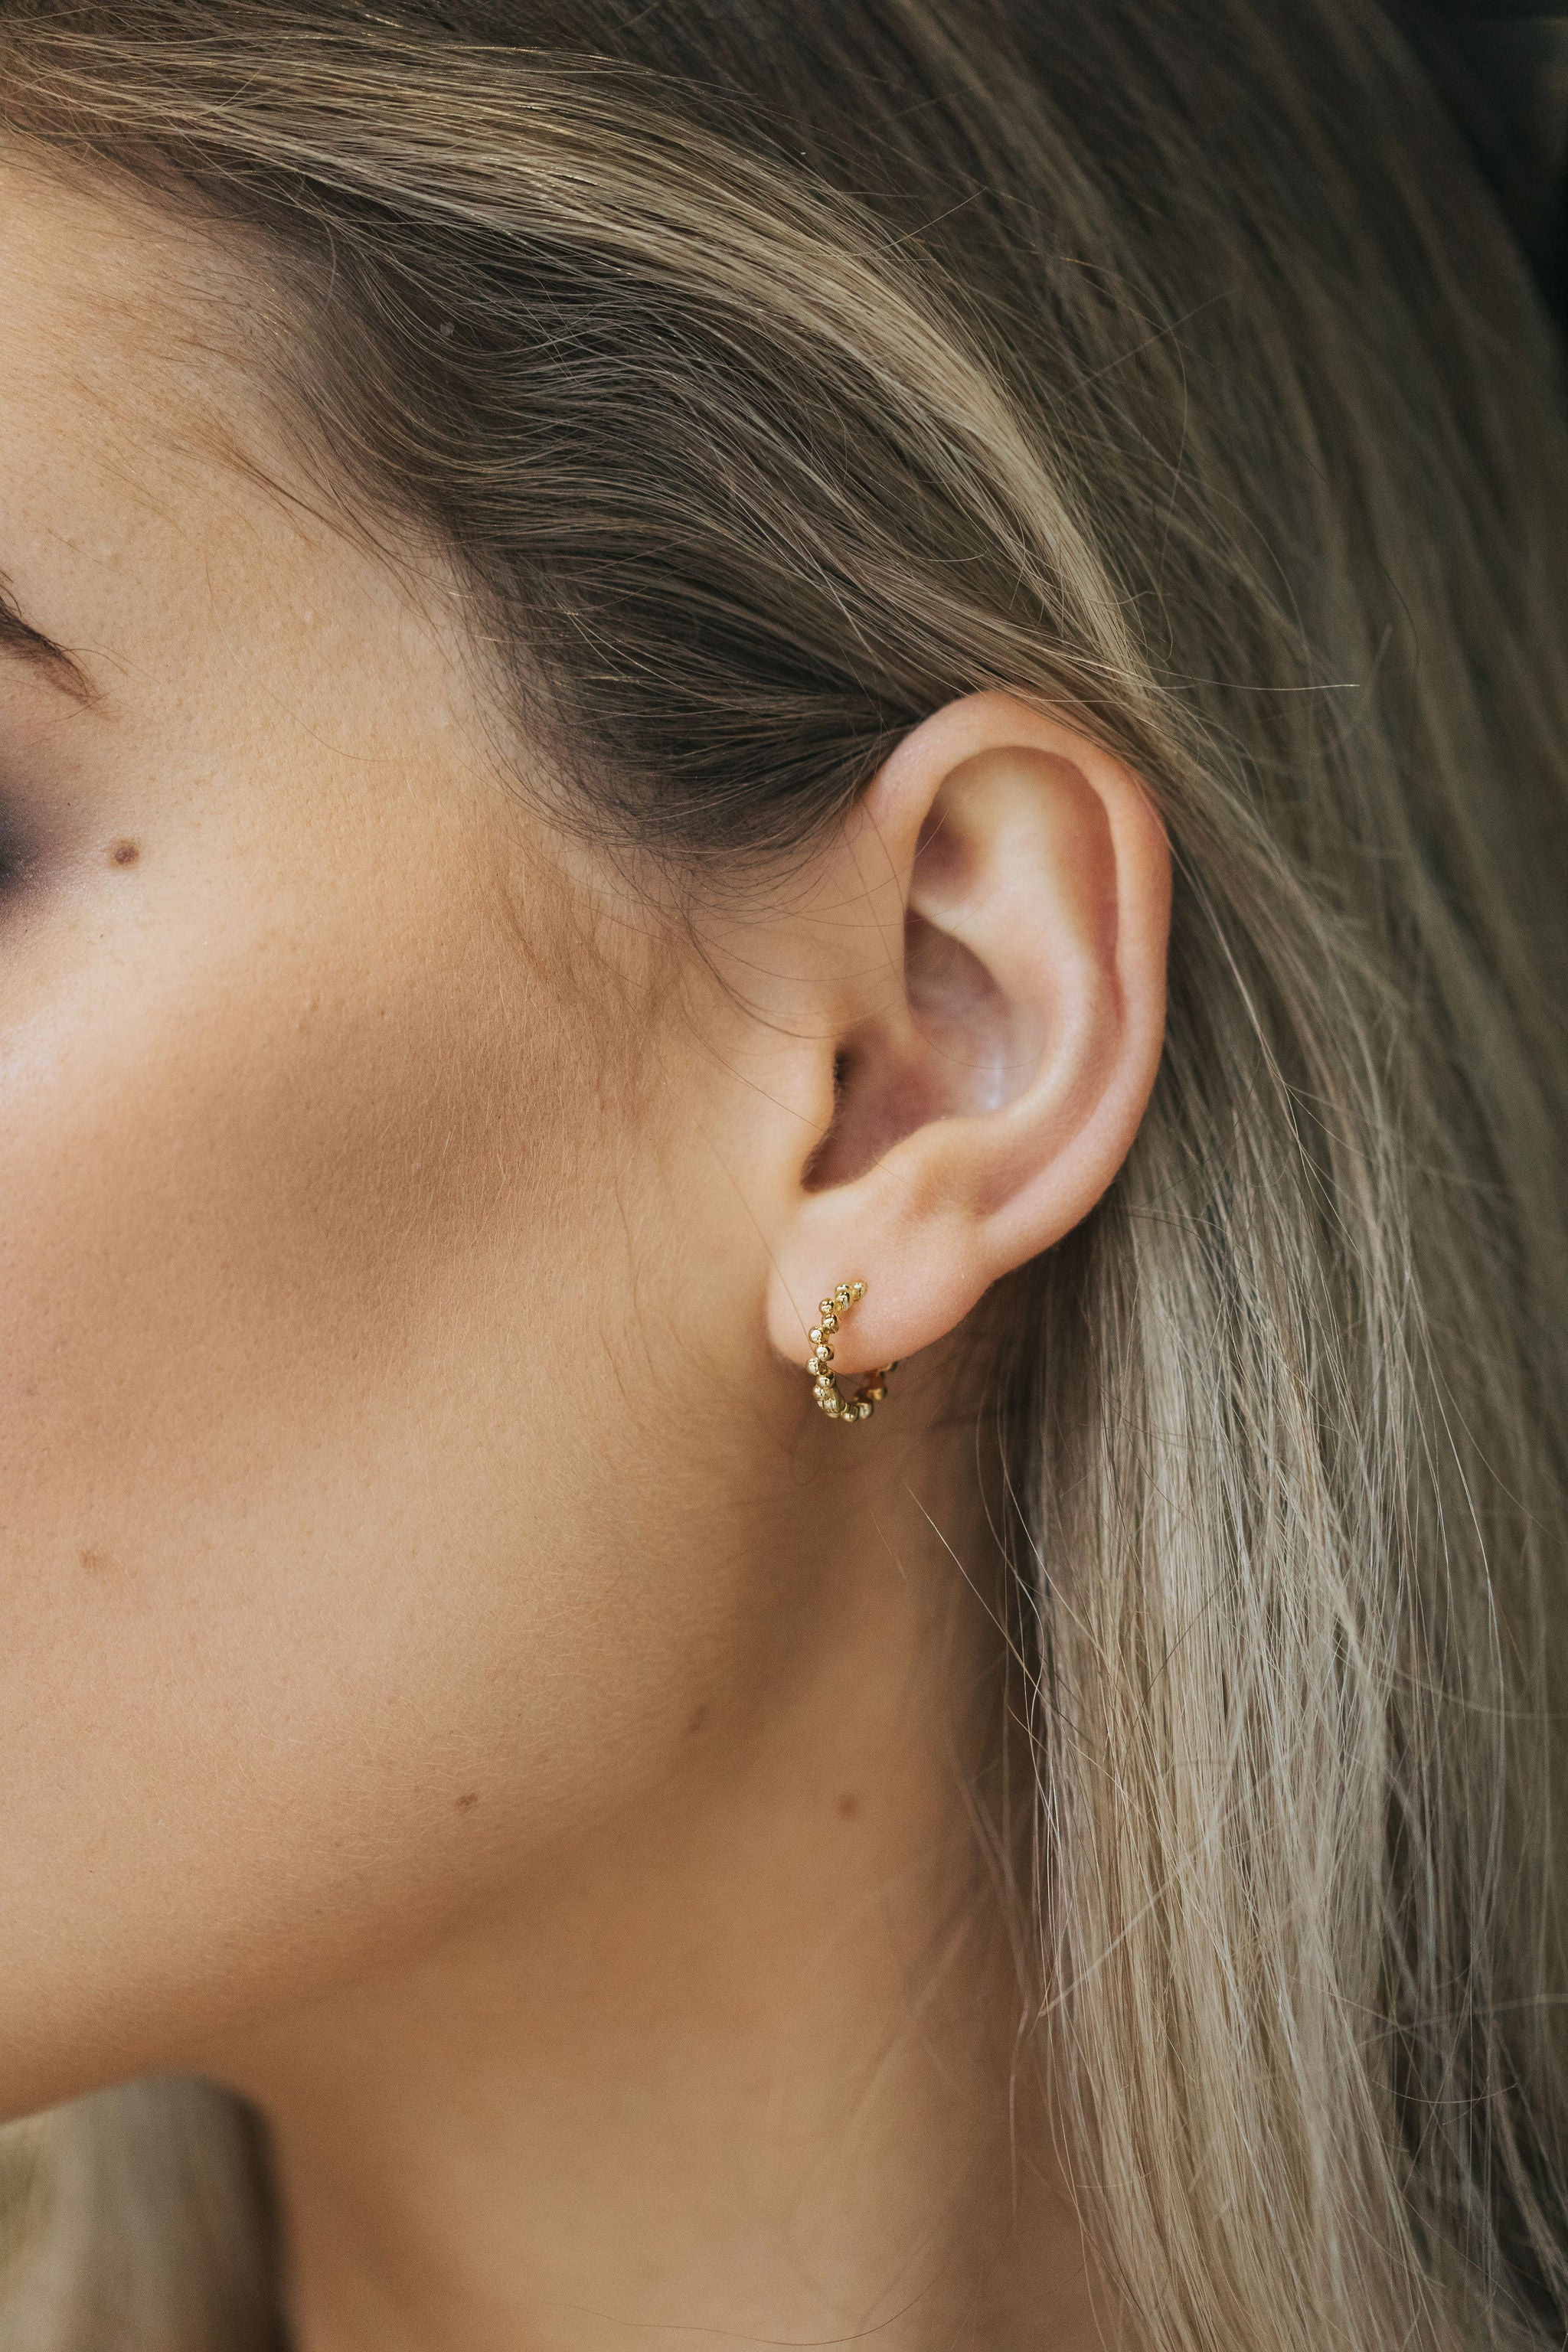 Iris mini hoops. sterling silver, rose gold plated